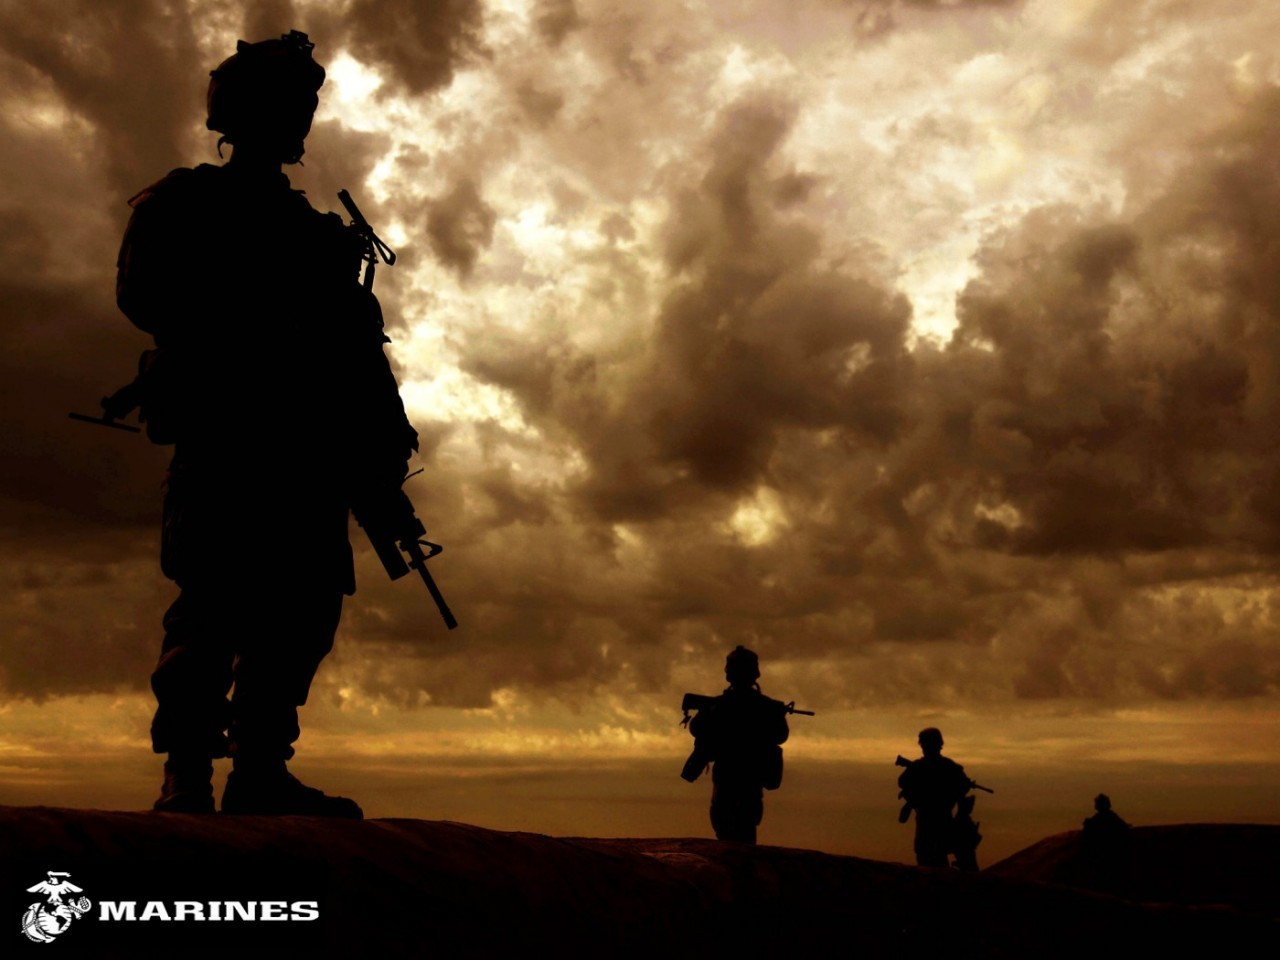 Military Images Us Army HD Wallpaper And Background Photos